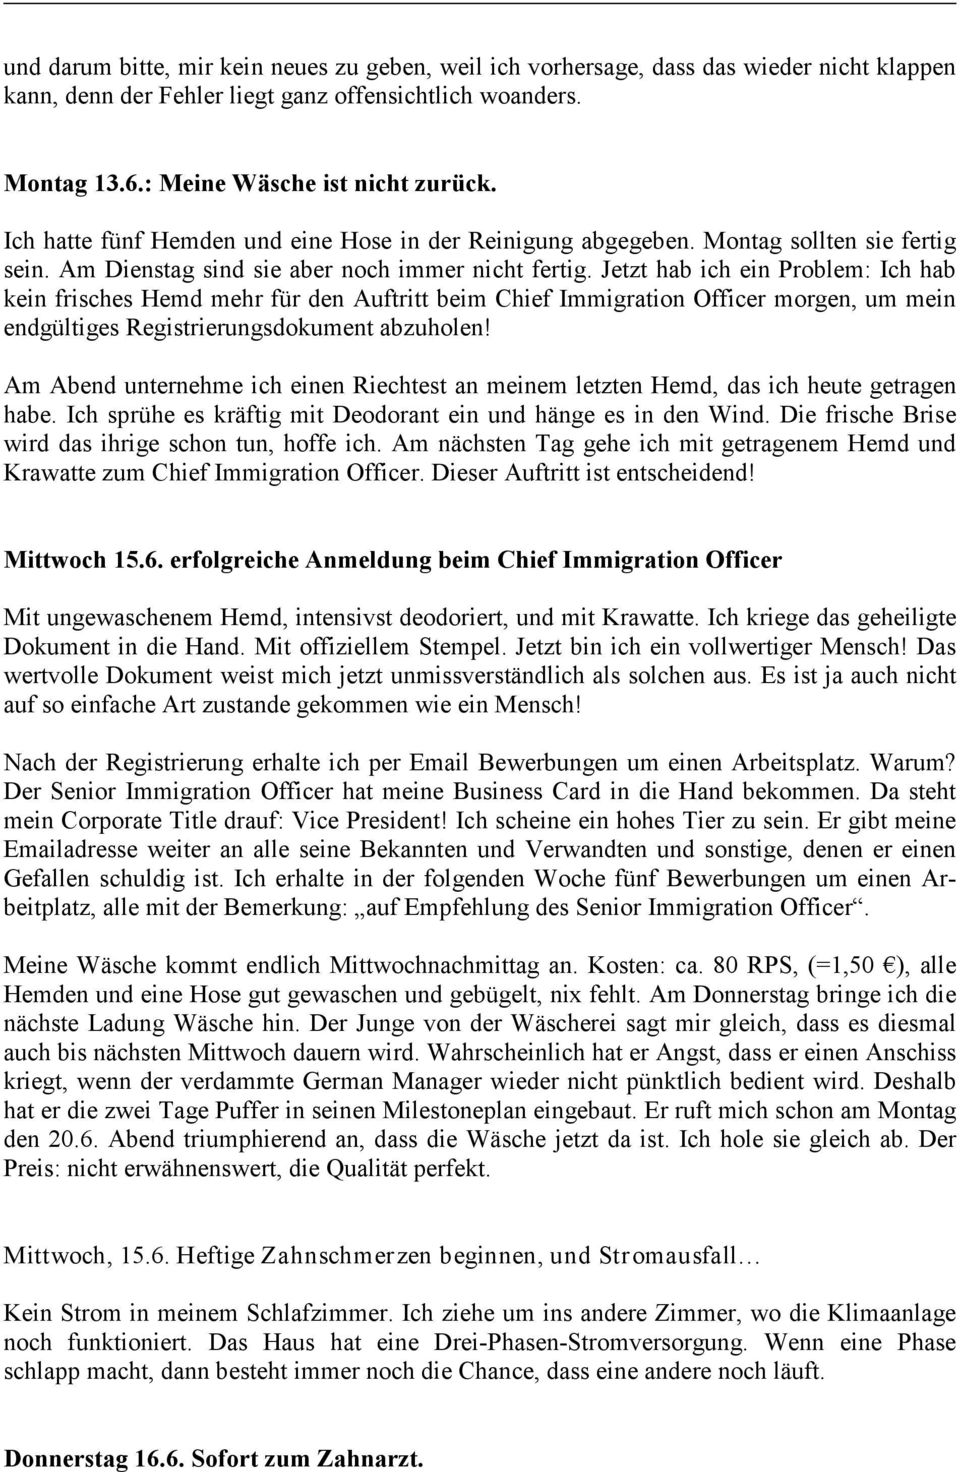 Jetzt hab ich ein Problem: Ich hab kein frisches Hemd mehr für den Auftritt beim Chief Immigration Officer morgen, um mein endgültiges Registrierungsdokument abzuholen!